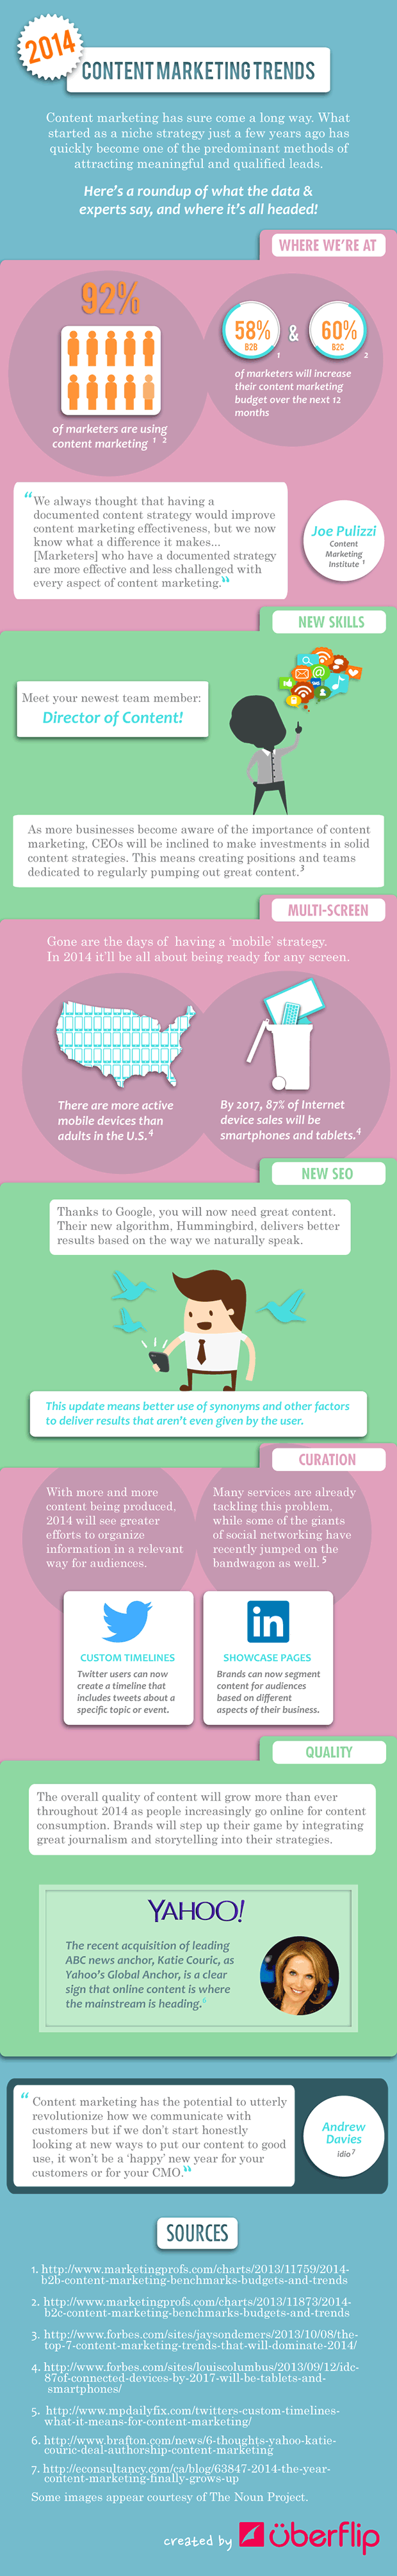 Top Content Marketing Trends for 2014 [infographic]